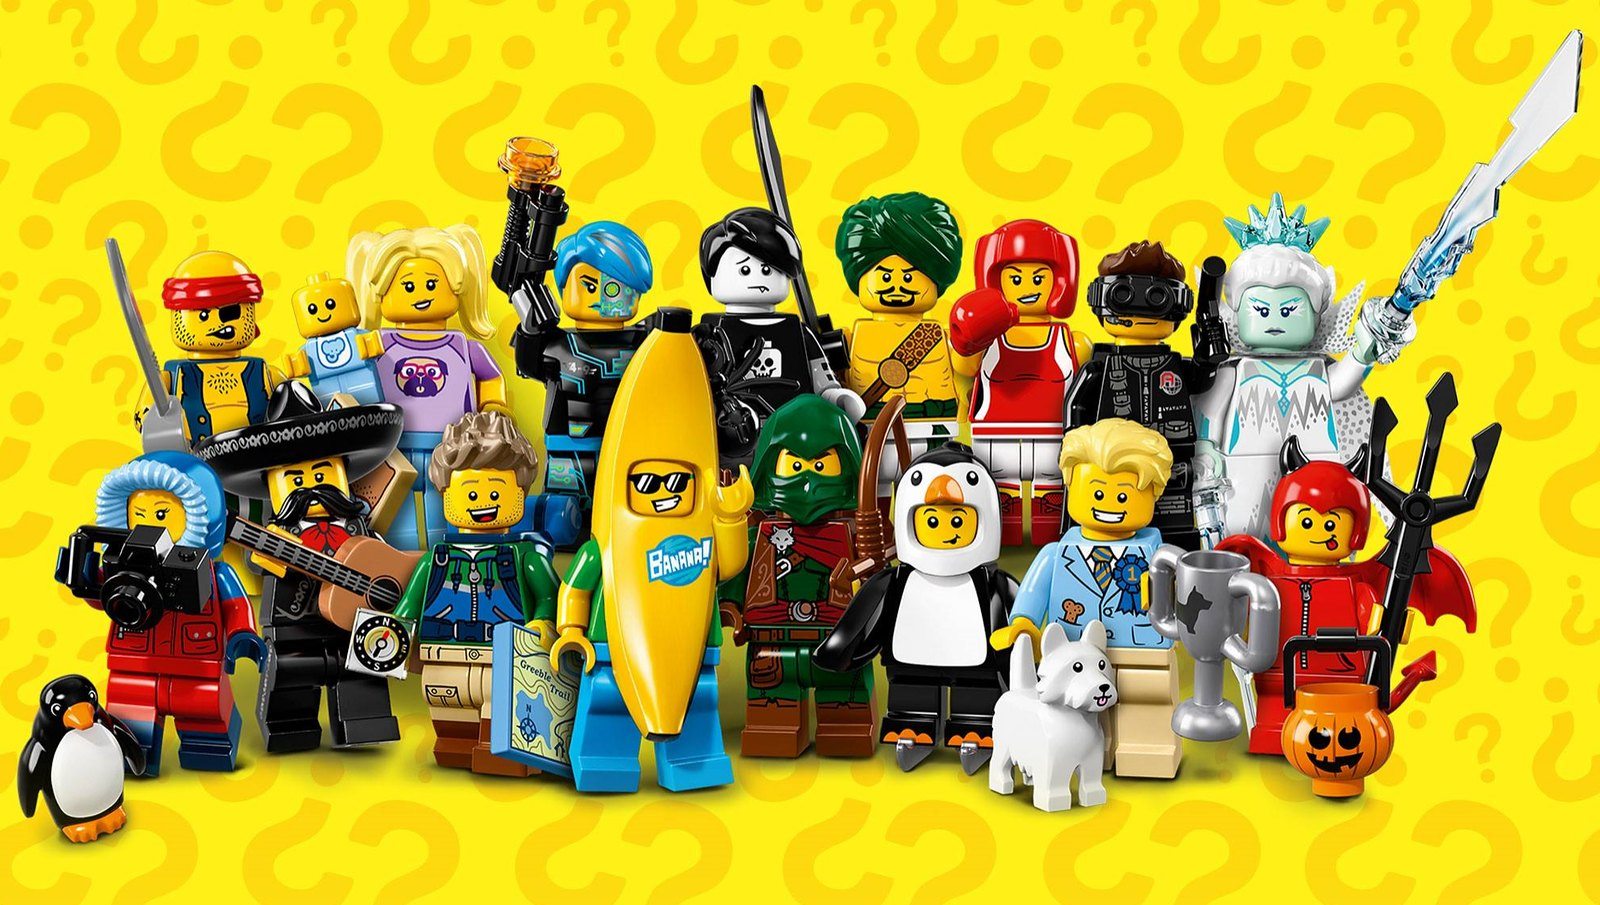 LEGO Collectible Minifigures 71013 - Series 16